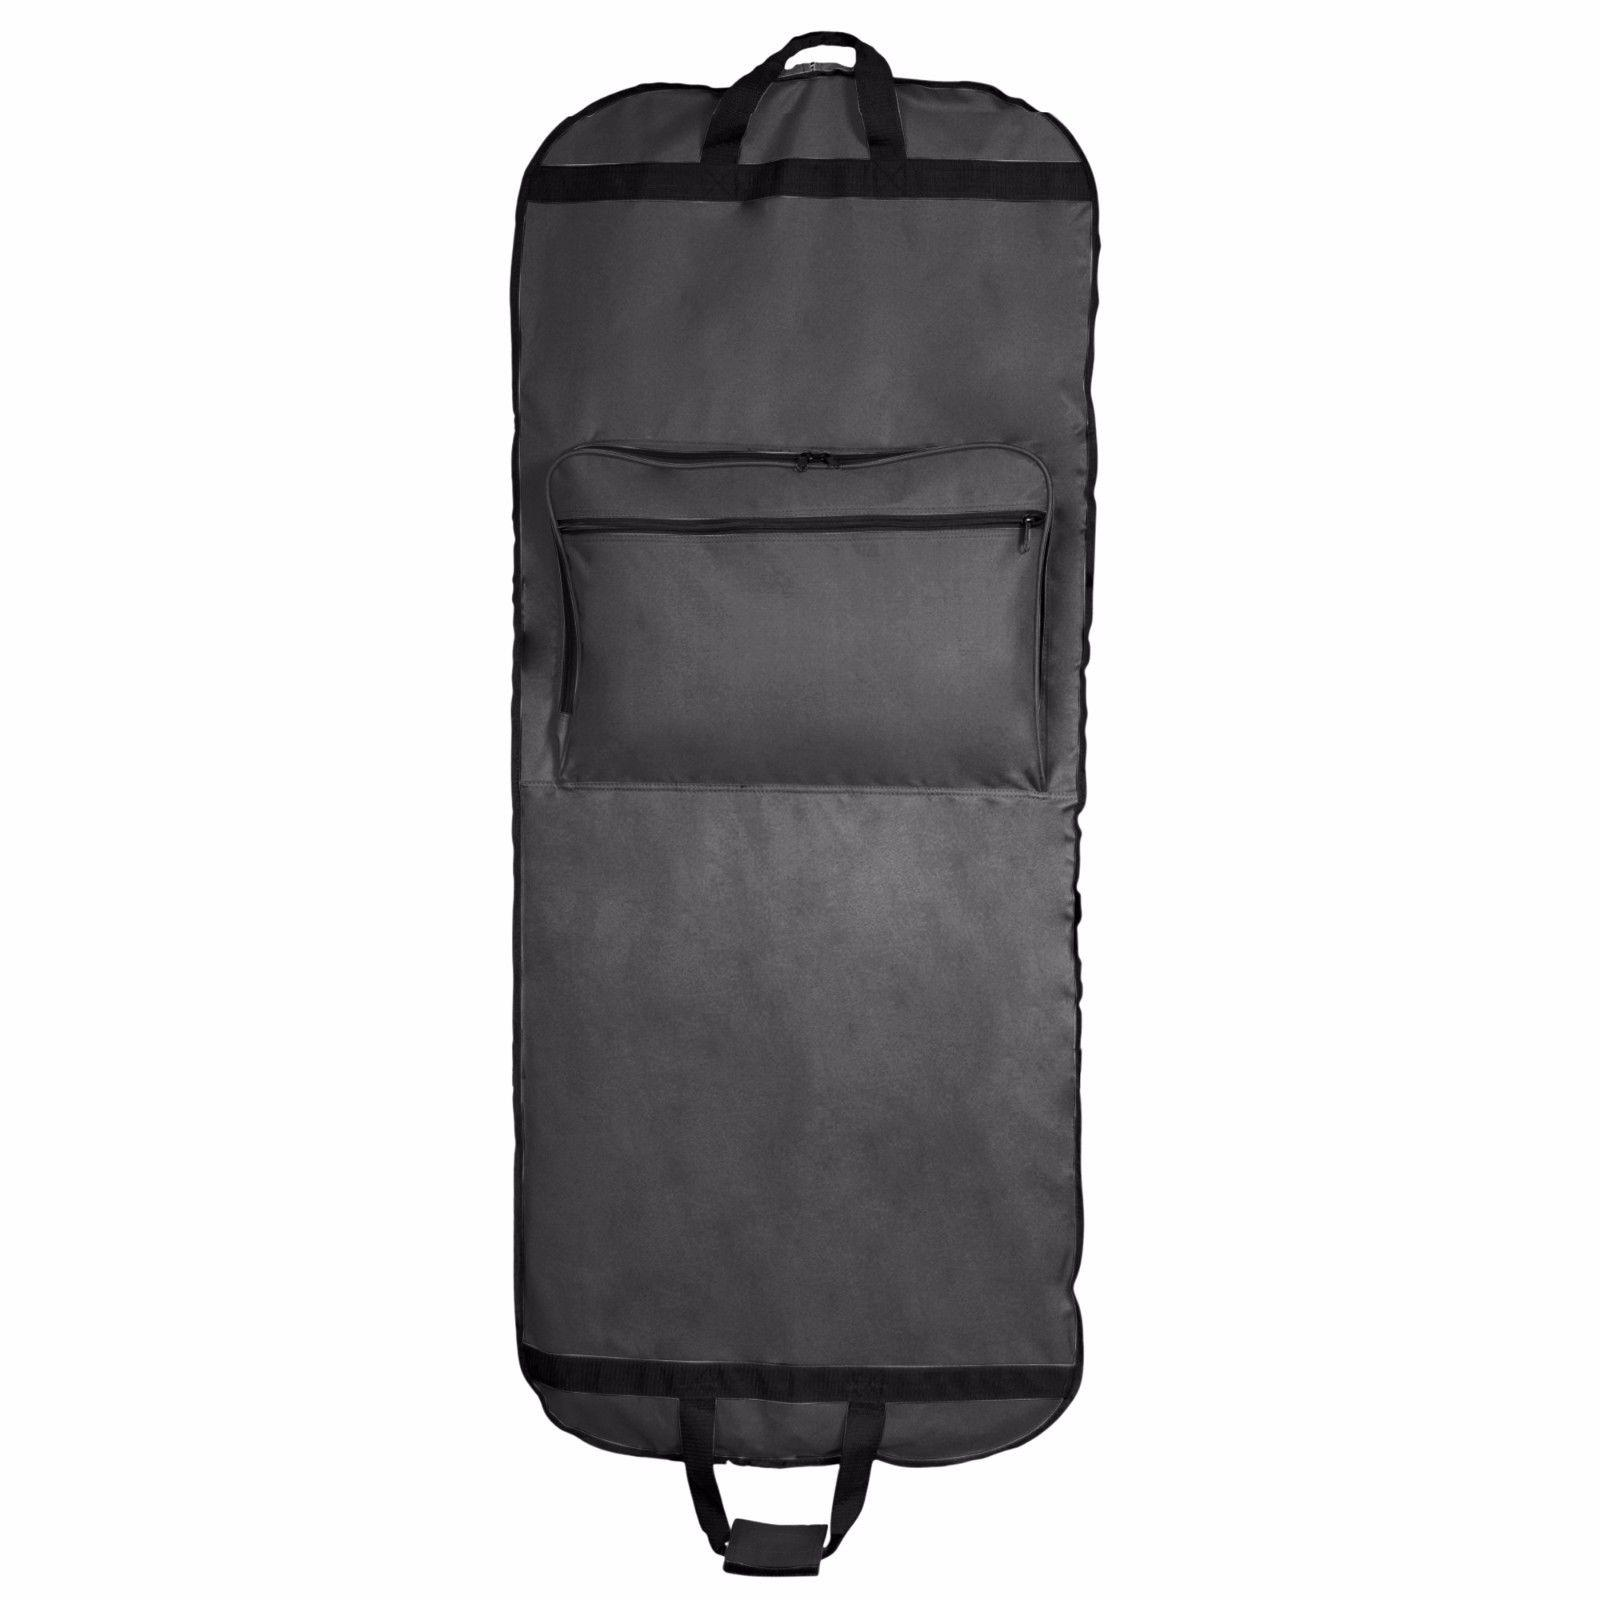 DALIX Professional Garment Bag Pants Gowns Dresses Fold Black